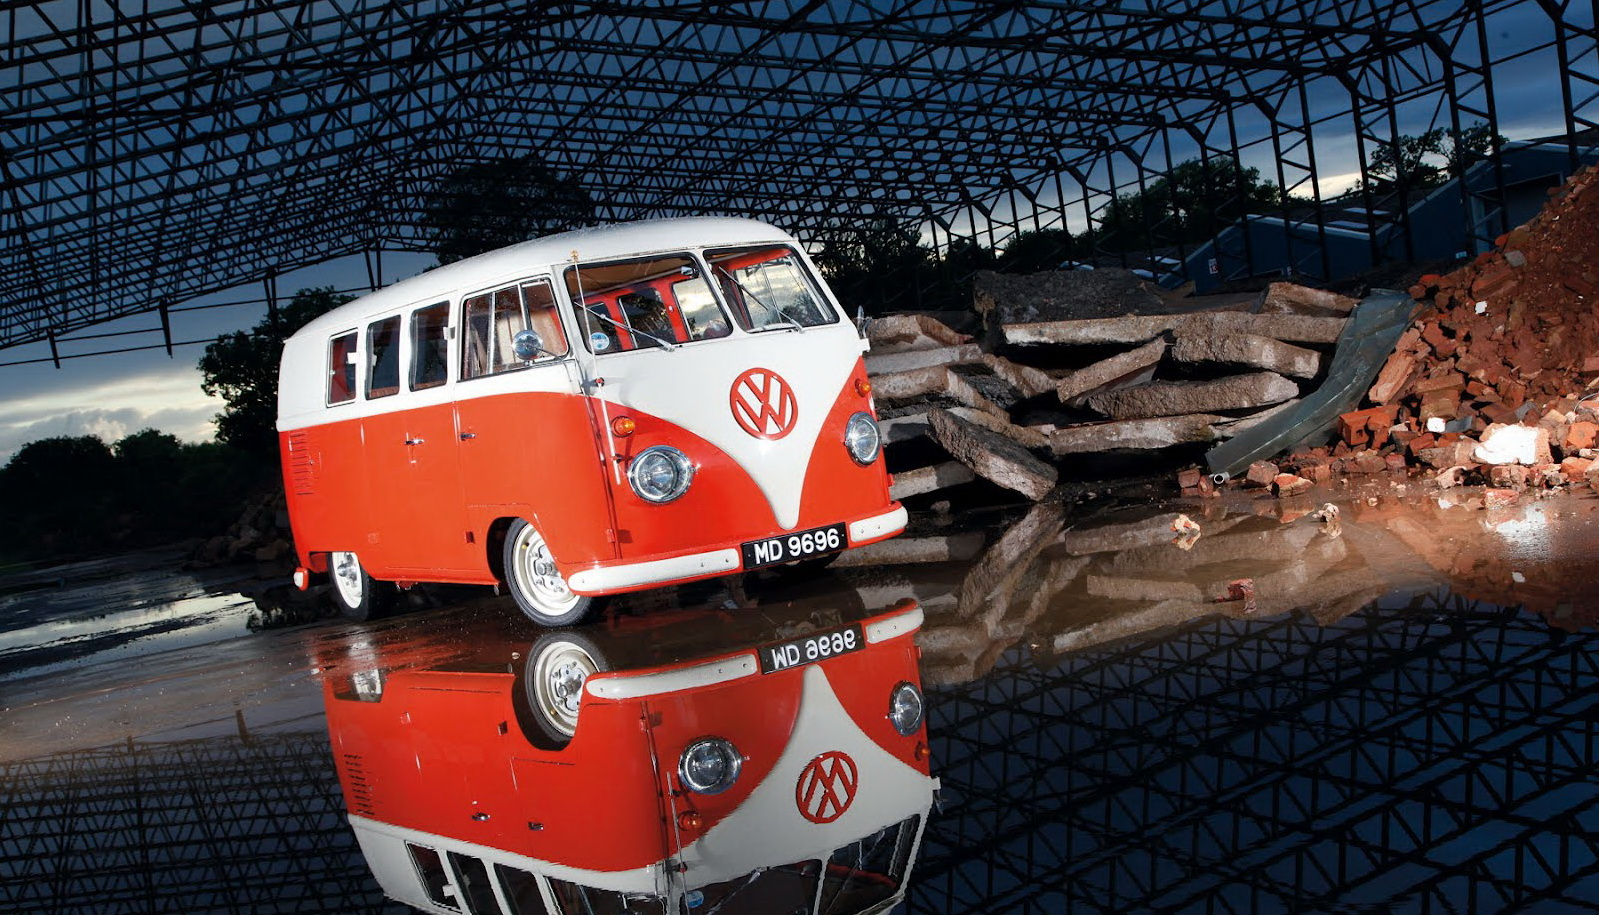 Classic VW Bus Wallpaper Desktop 10272 Wallpaper WallpaperLepi 1599x915